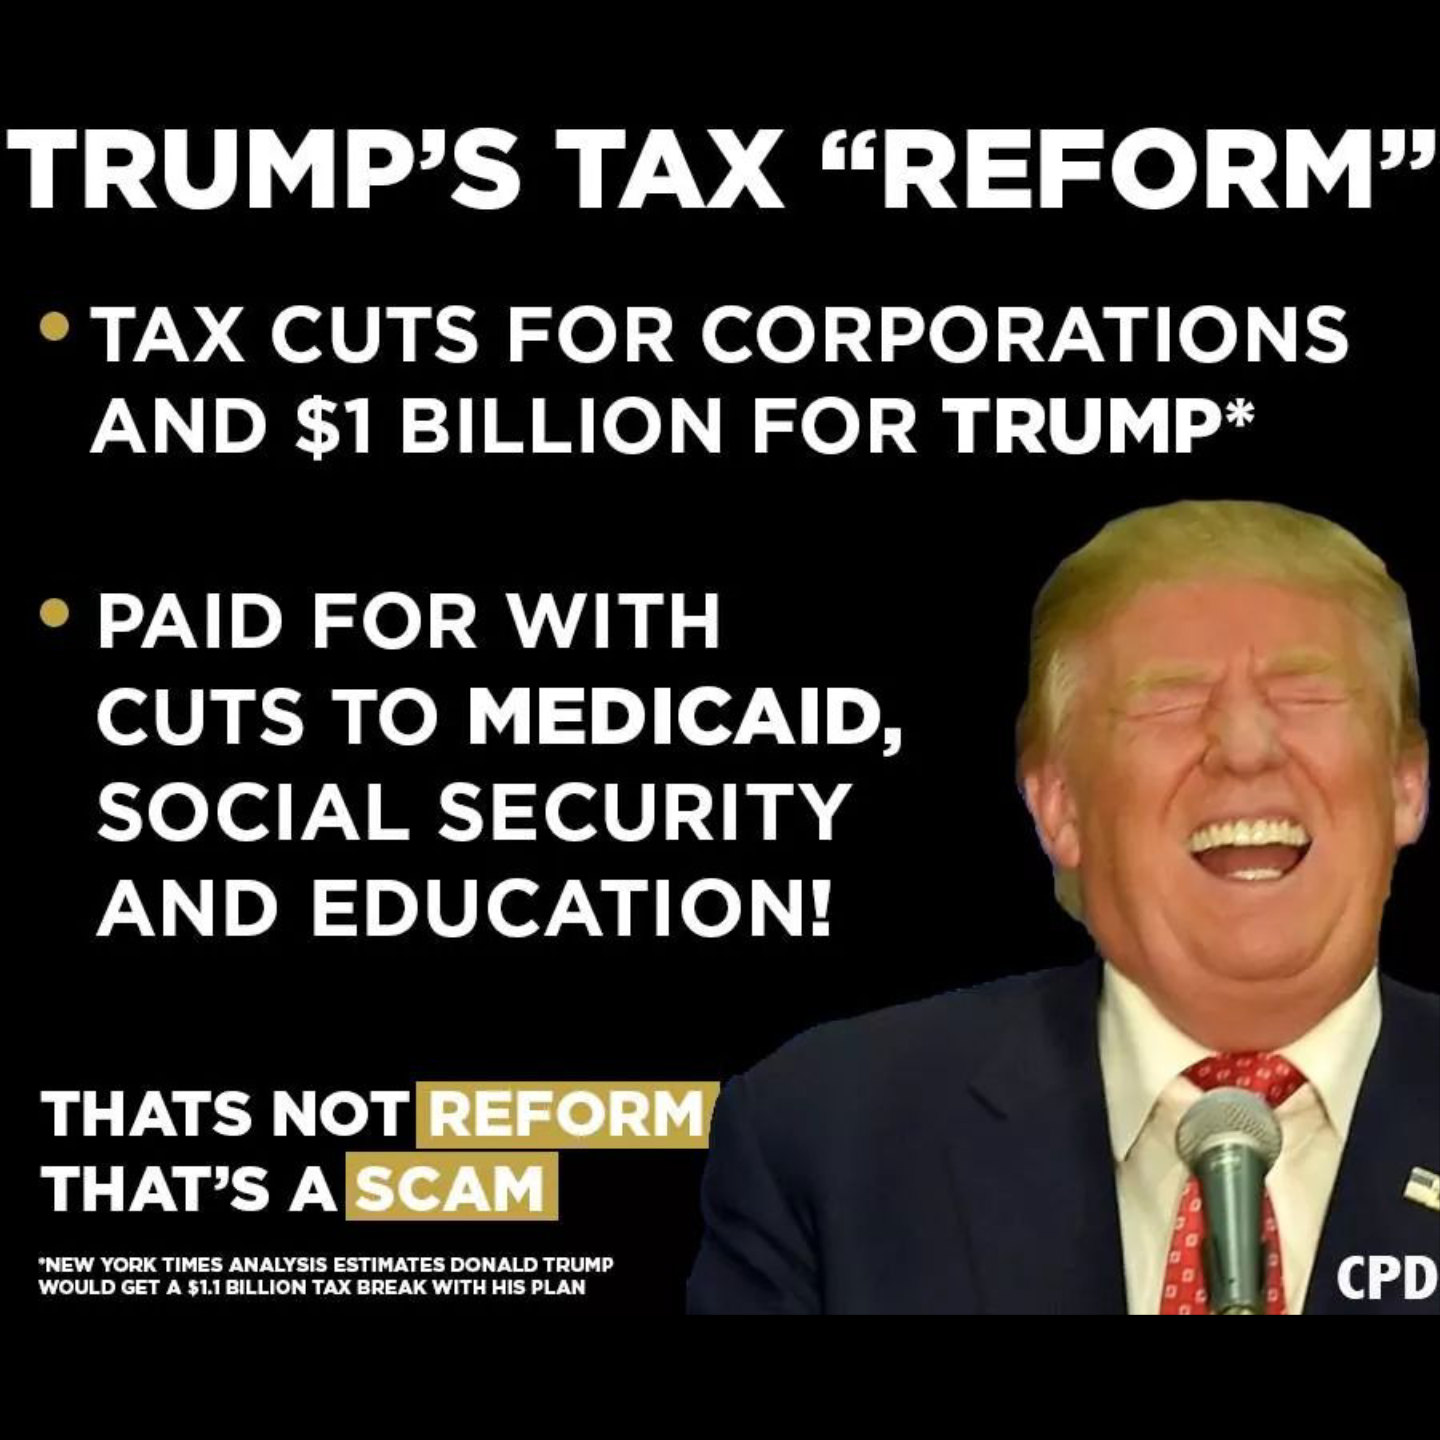 commit to fully repealing the immoral unjust and job killing trump tax scam in the next congress with no exceptions and replace it with a plan